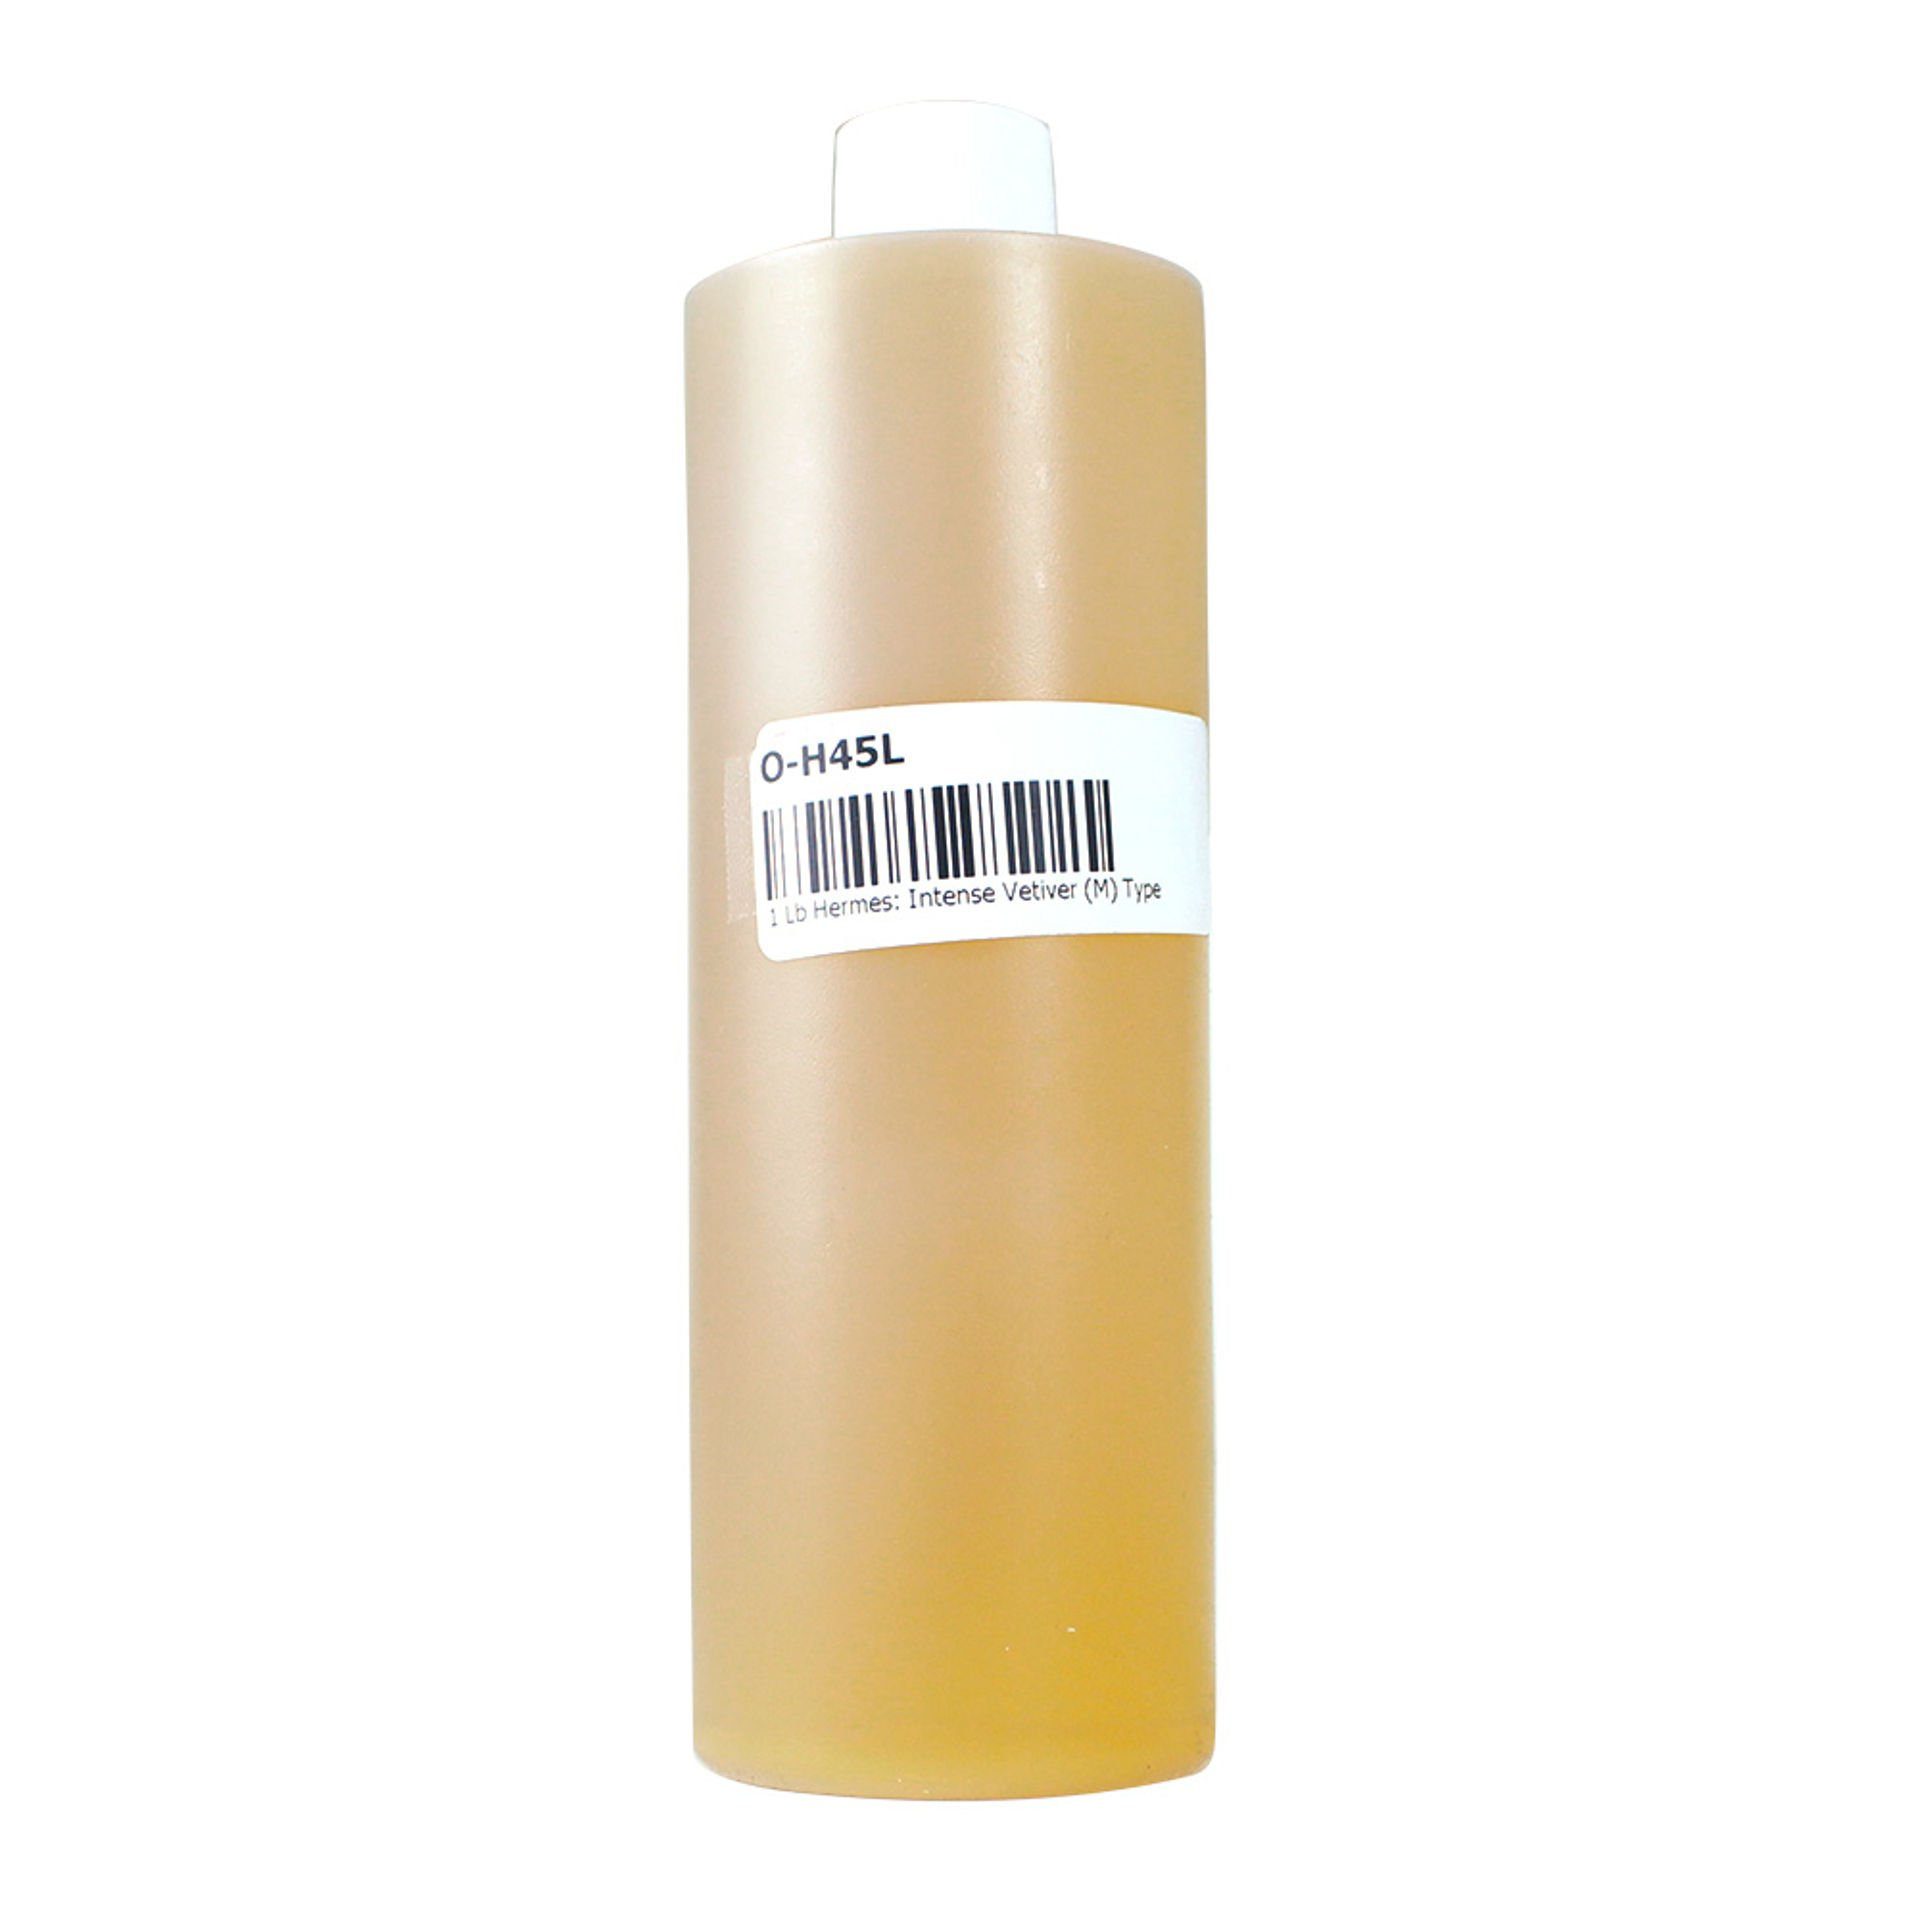 Picture of 1 Lb Hermes: Intense Vetiver (M) Type